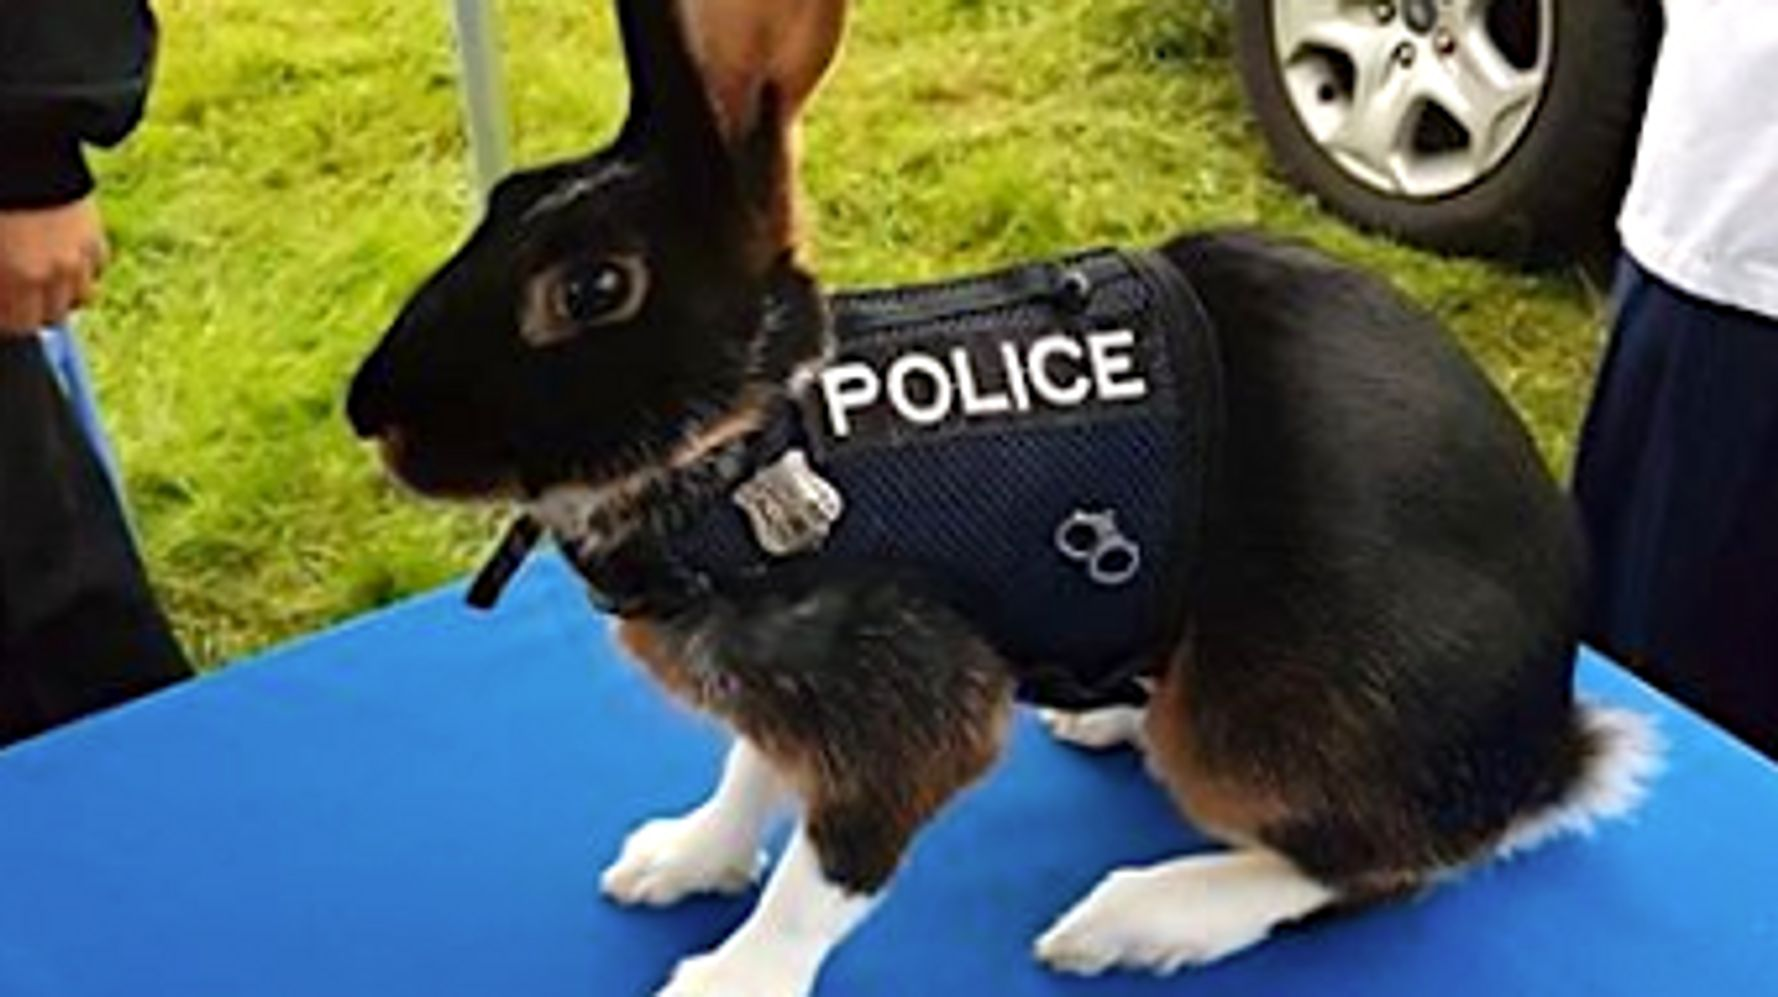 This Uniformed 'Police Rabbit' Is Making The Internet Hop With Joy ...